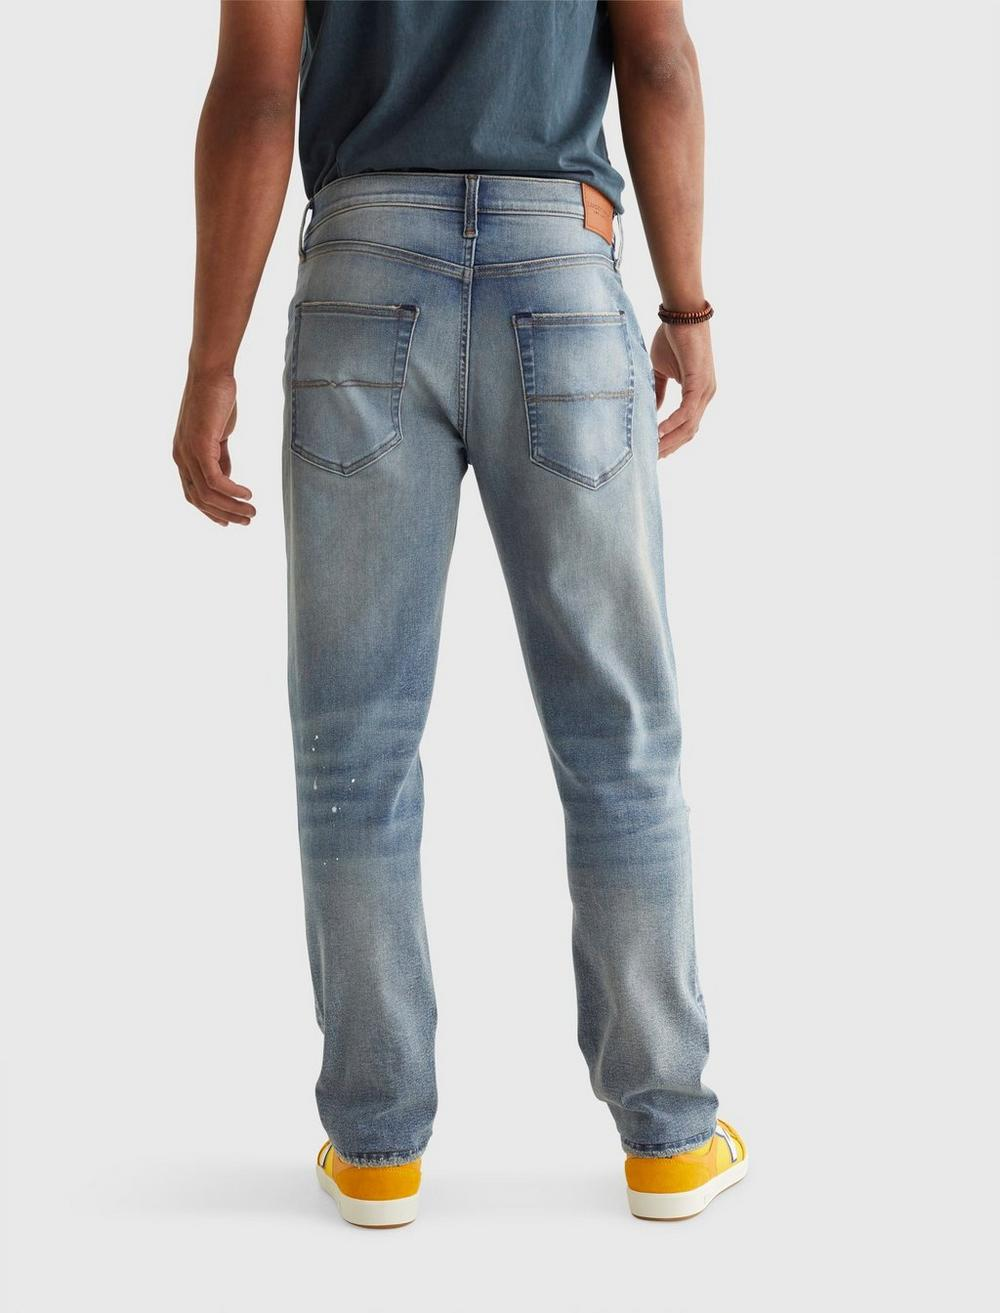 410 ATHLETIC STRAIGHT 4-WAY STRETCH JEAN, image 3